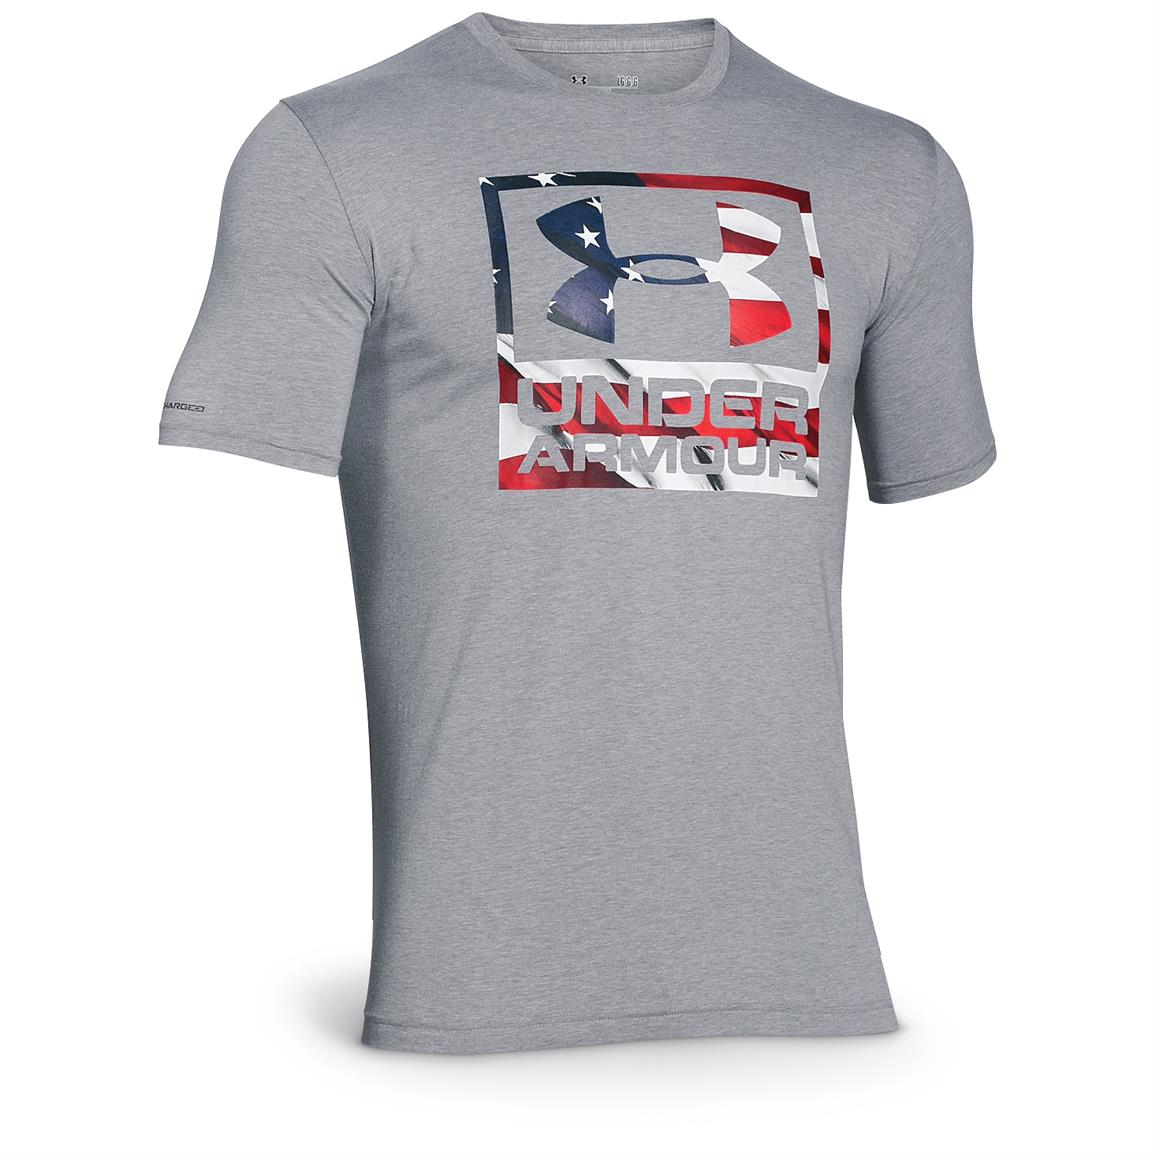 Under Armour Men's BFL Patriotic Logo Short-sleeved T-Shirt, True Gray